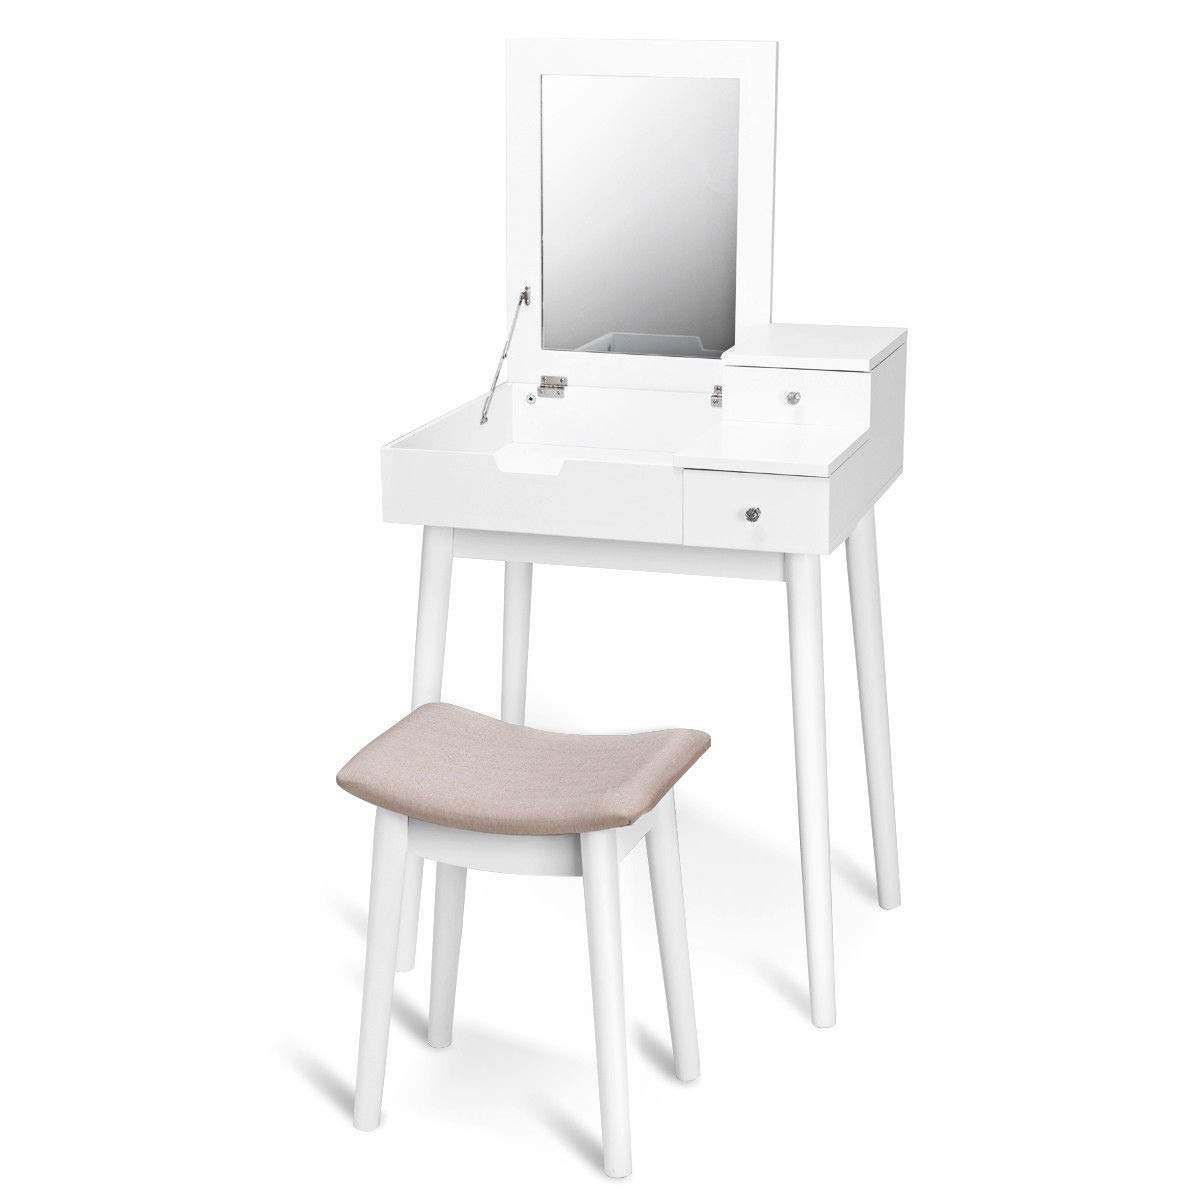 New Luxurious Modern Home Bedroom Vanity Dressing Table Furniture Set Flip Mirror Desk Stool Durable Sturdy Compact Neat by USA_Best_Seller